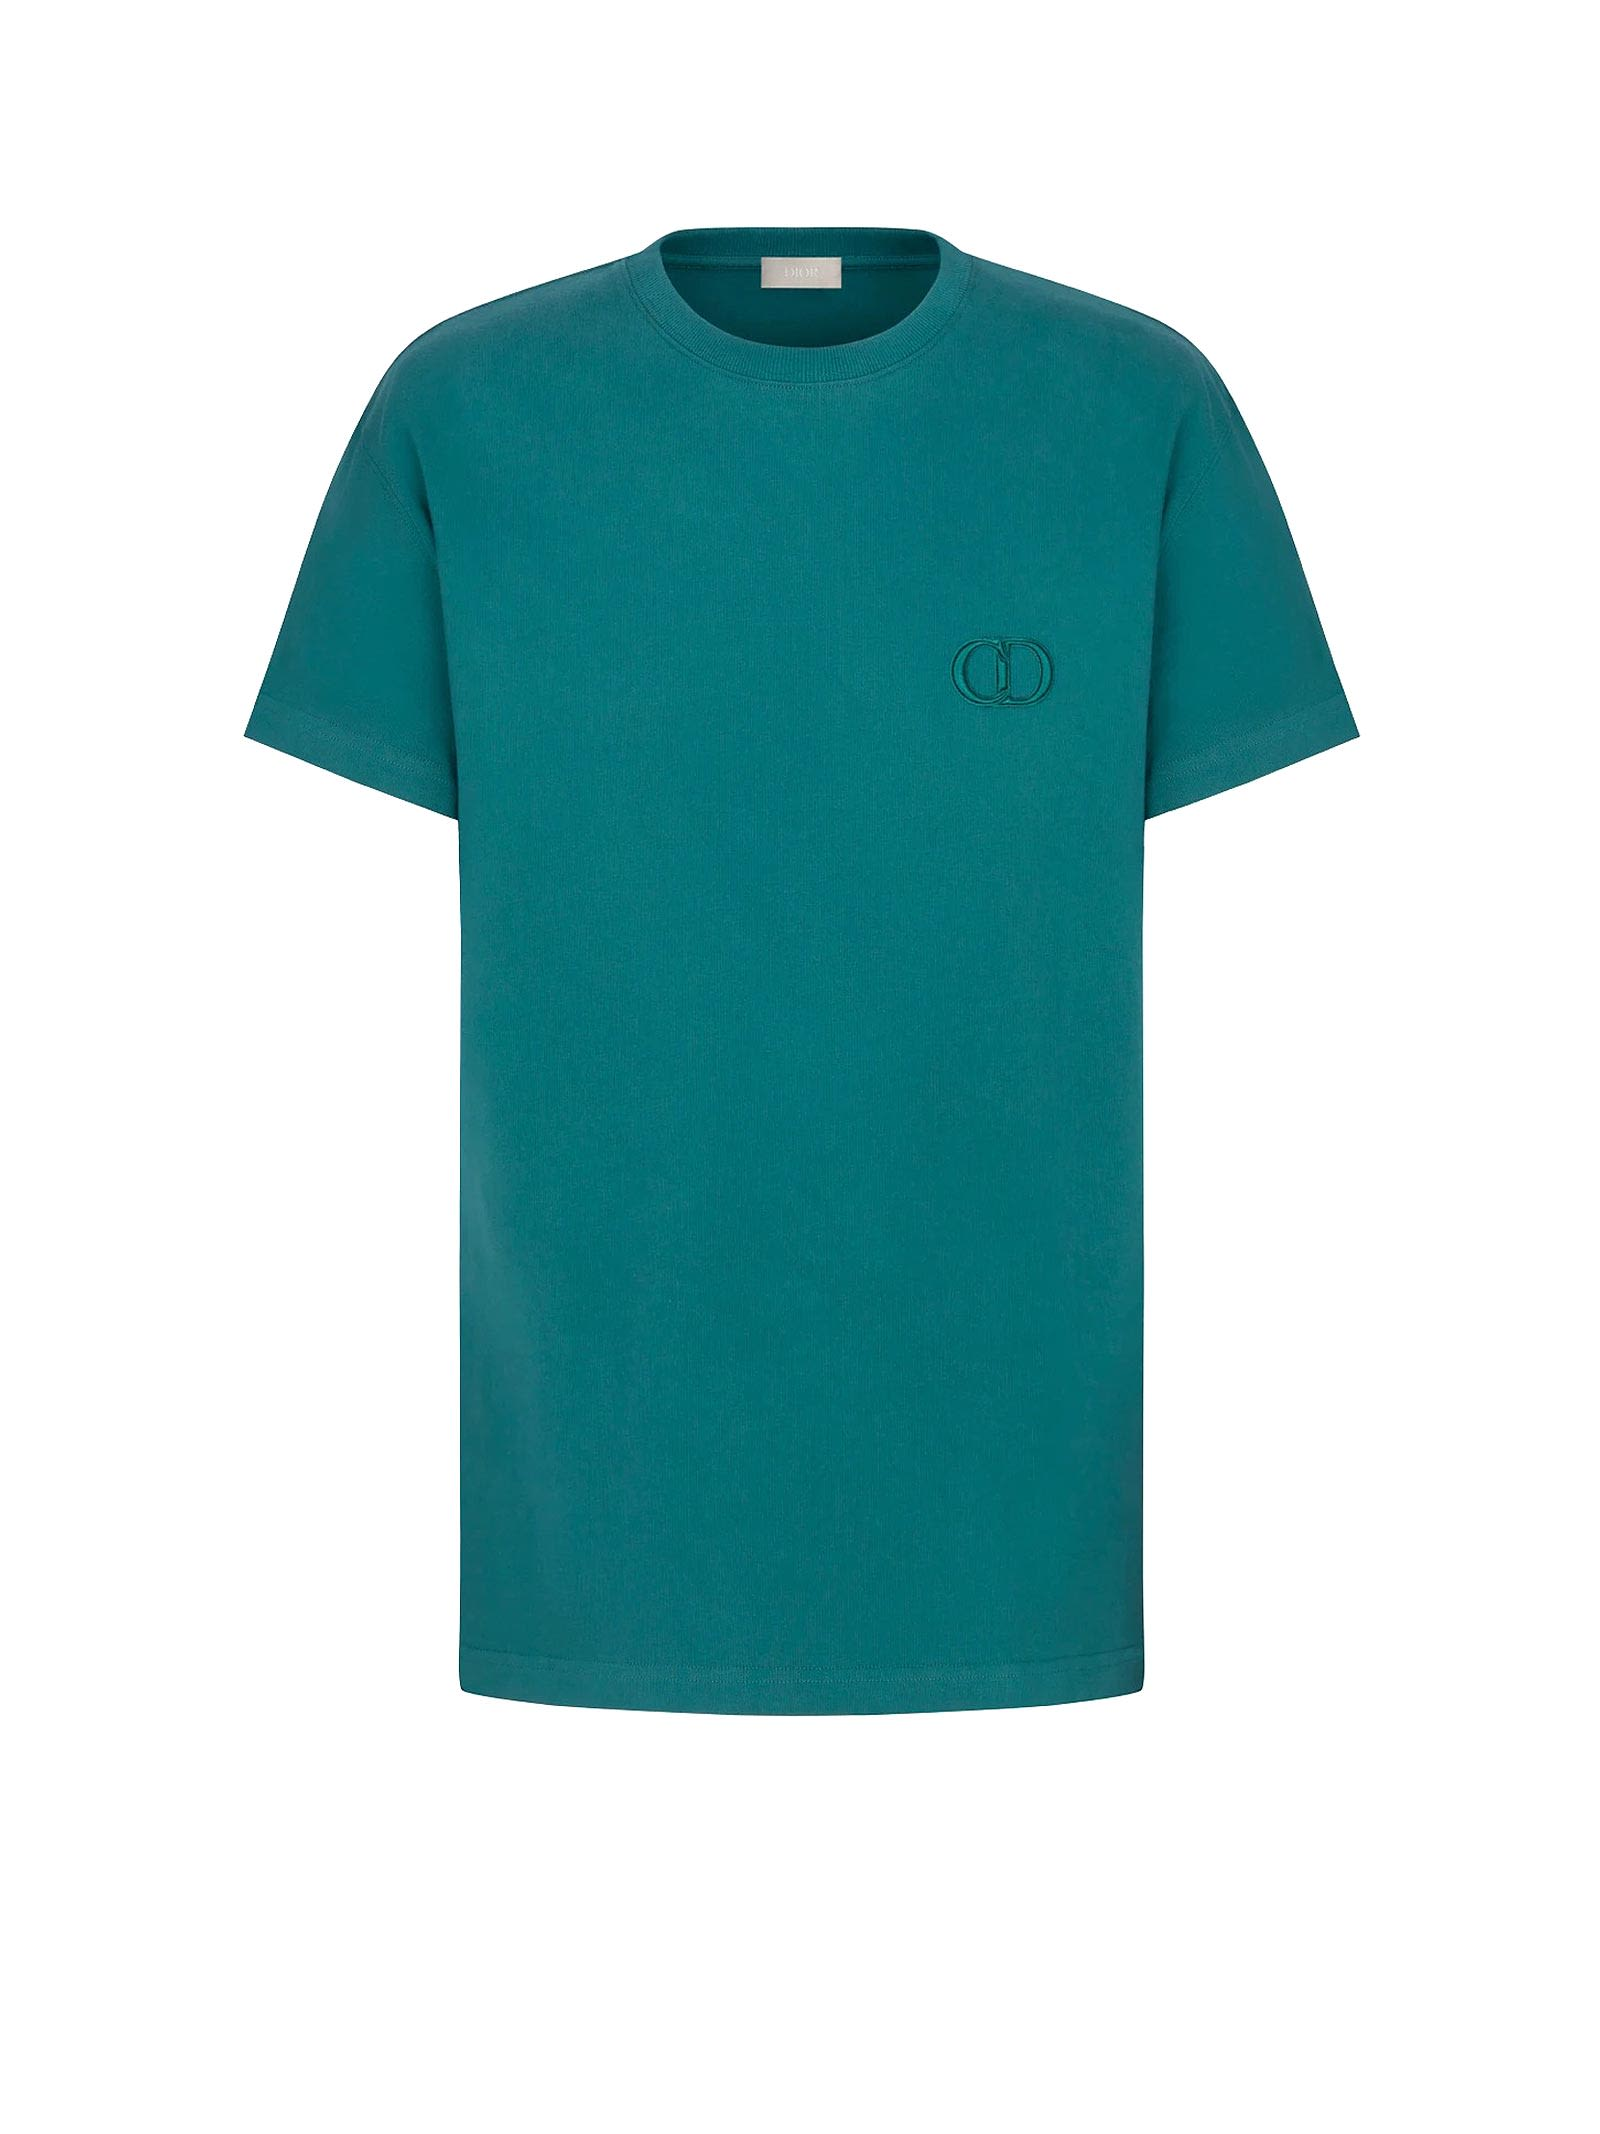 T-shirt In Green Cotton